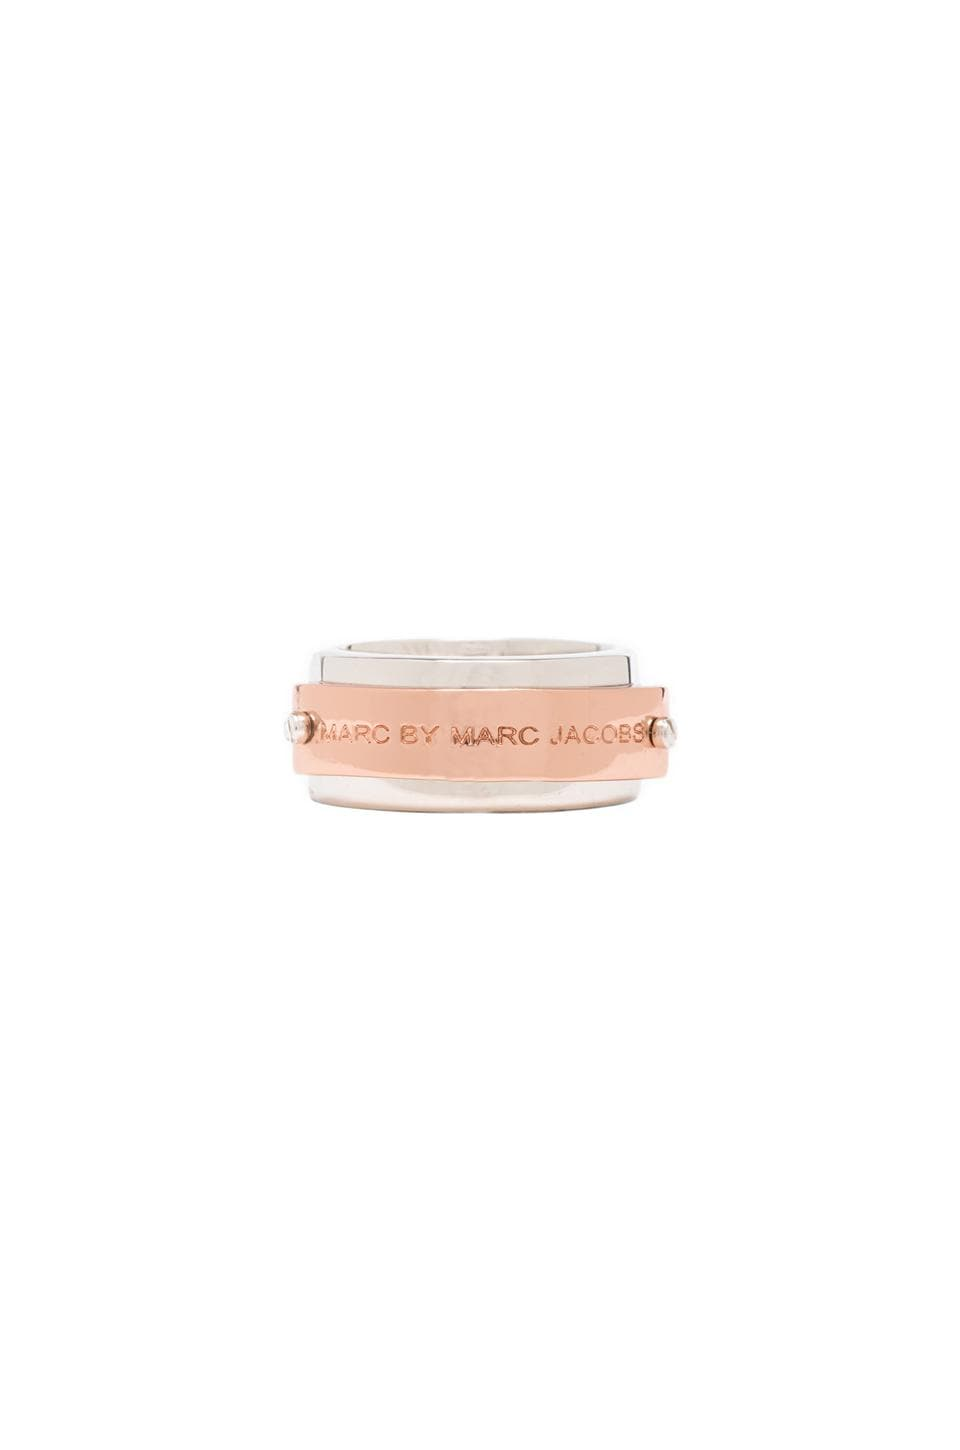 Marc by Marc Jacobs New Plaque Logo Ring in Rose Gold/Argento